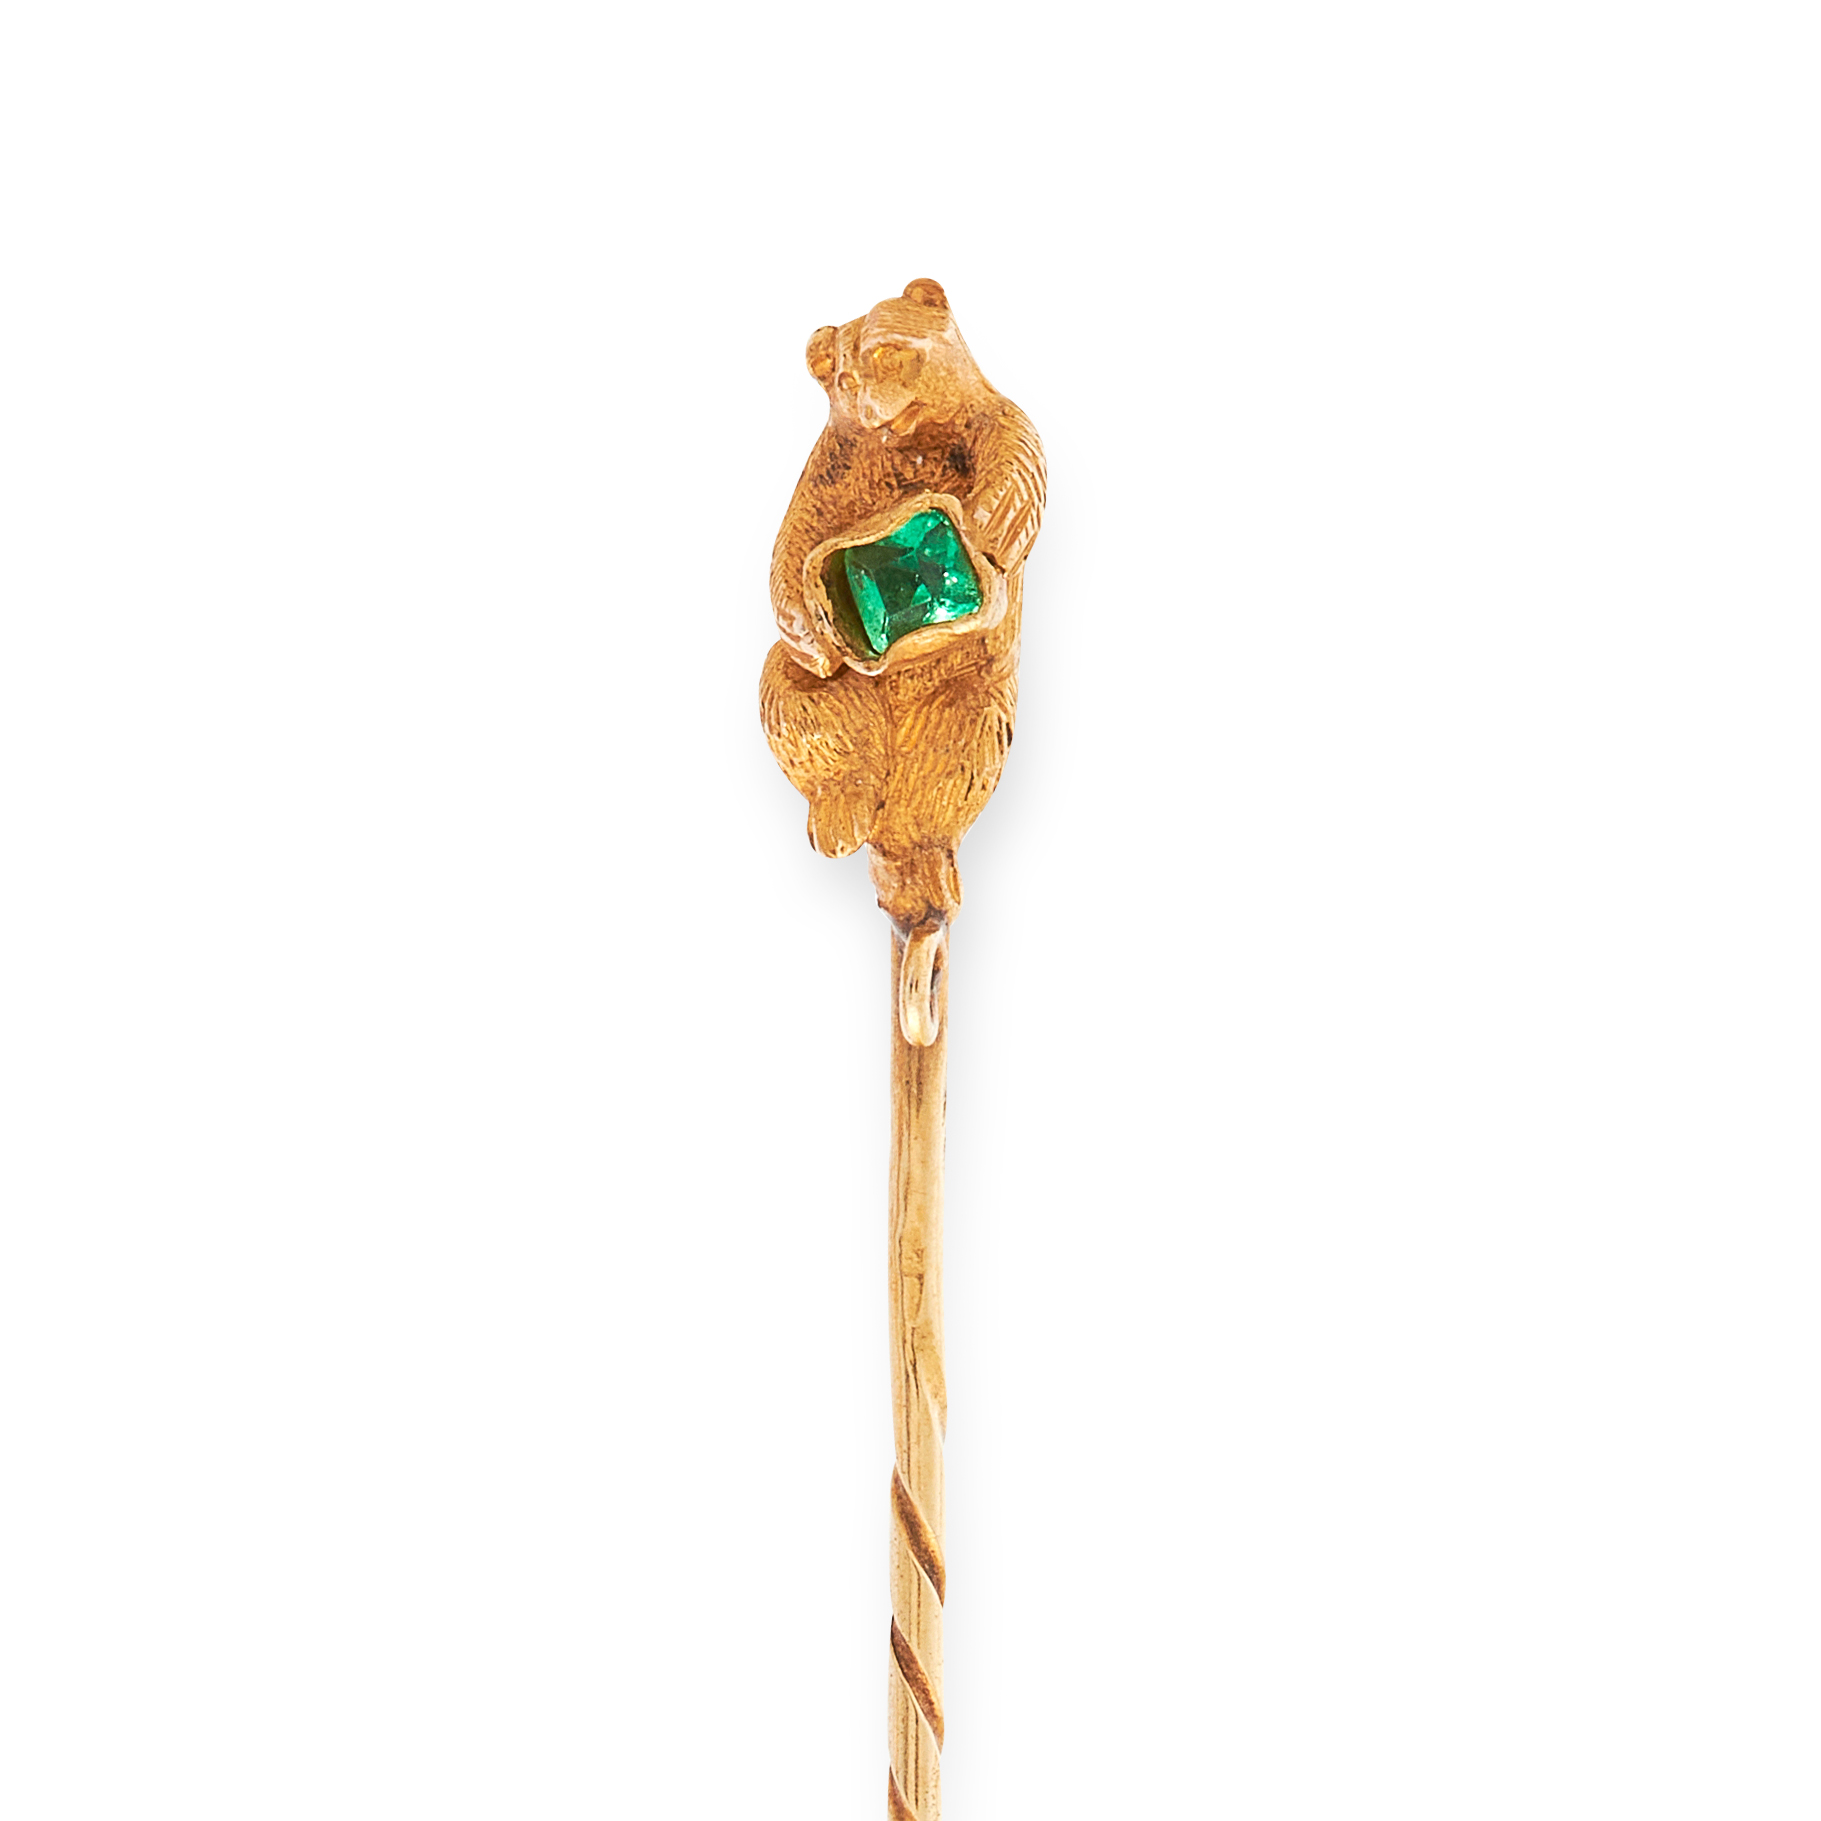 TWO ANTIQUE GEMSET TIE / STICK PINS in 18ct yellow gold, in the form of a beer holding a green